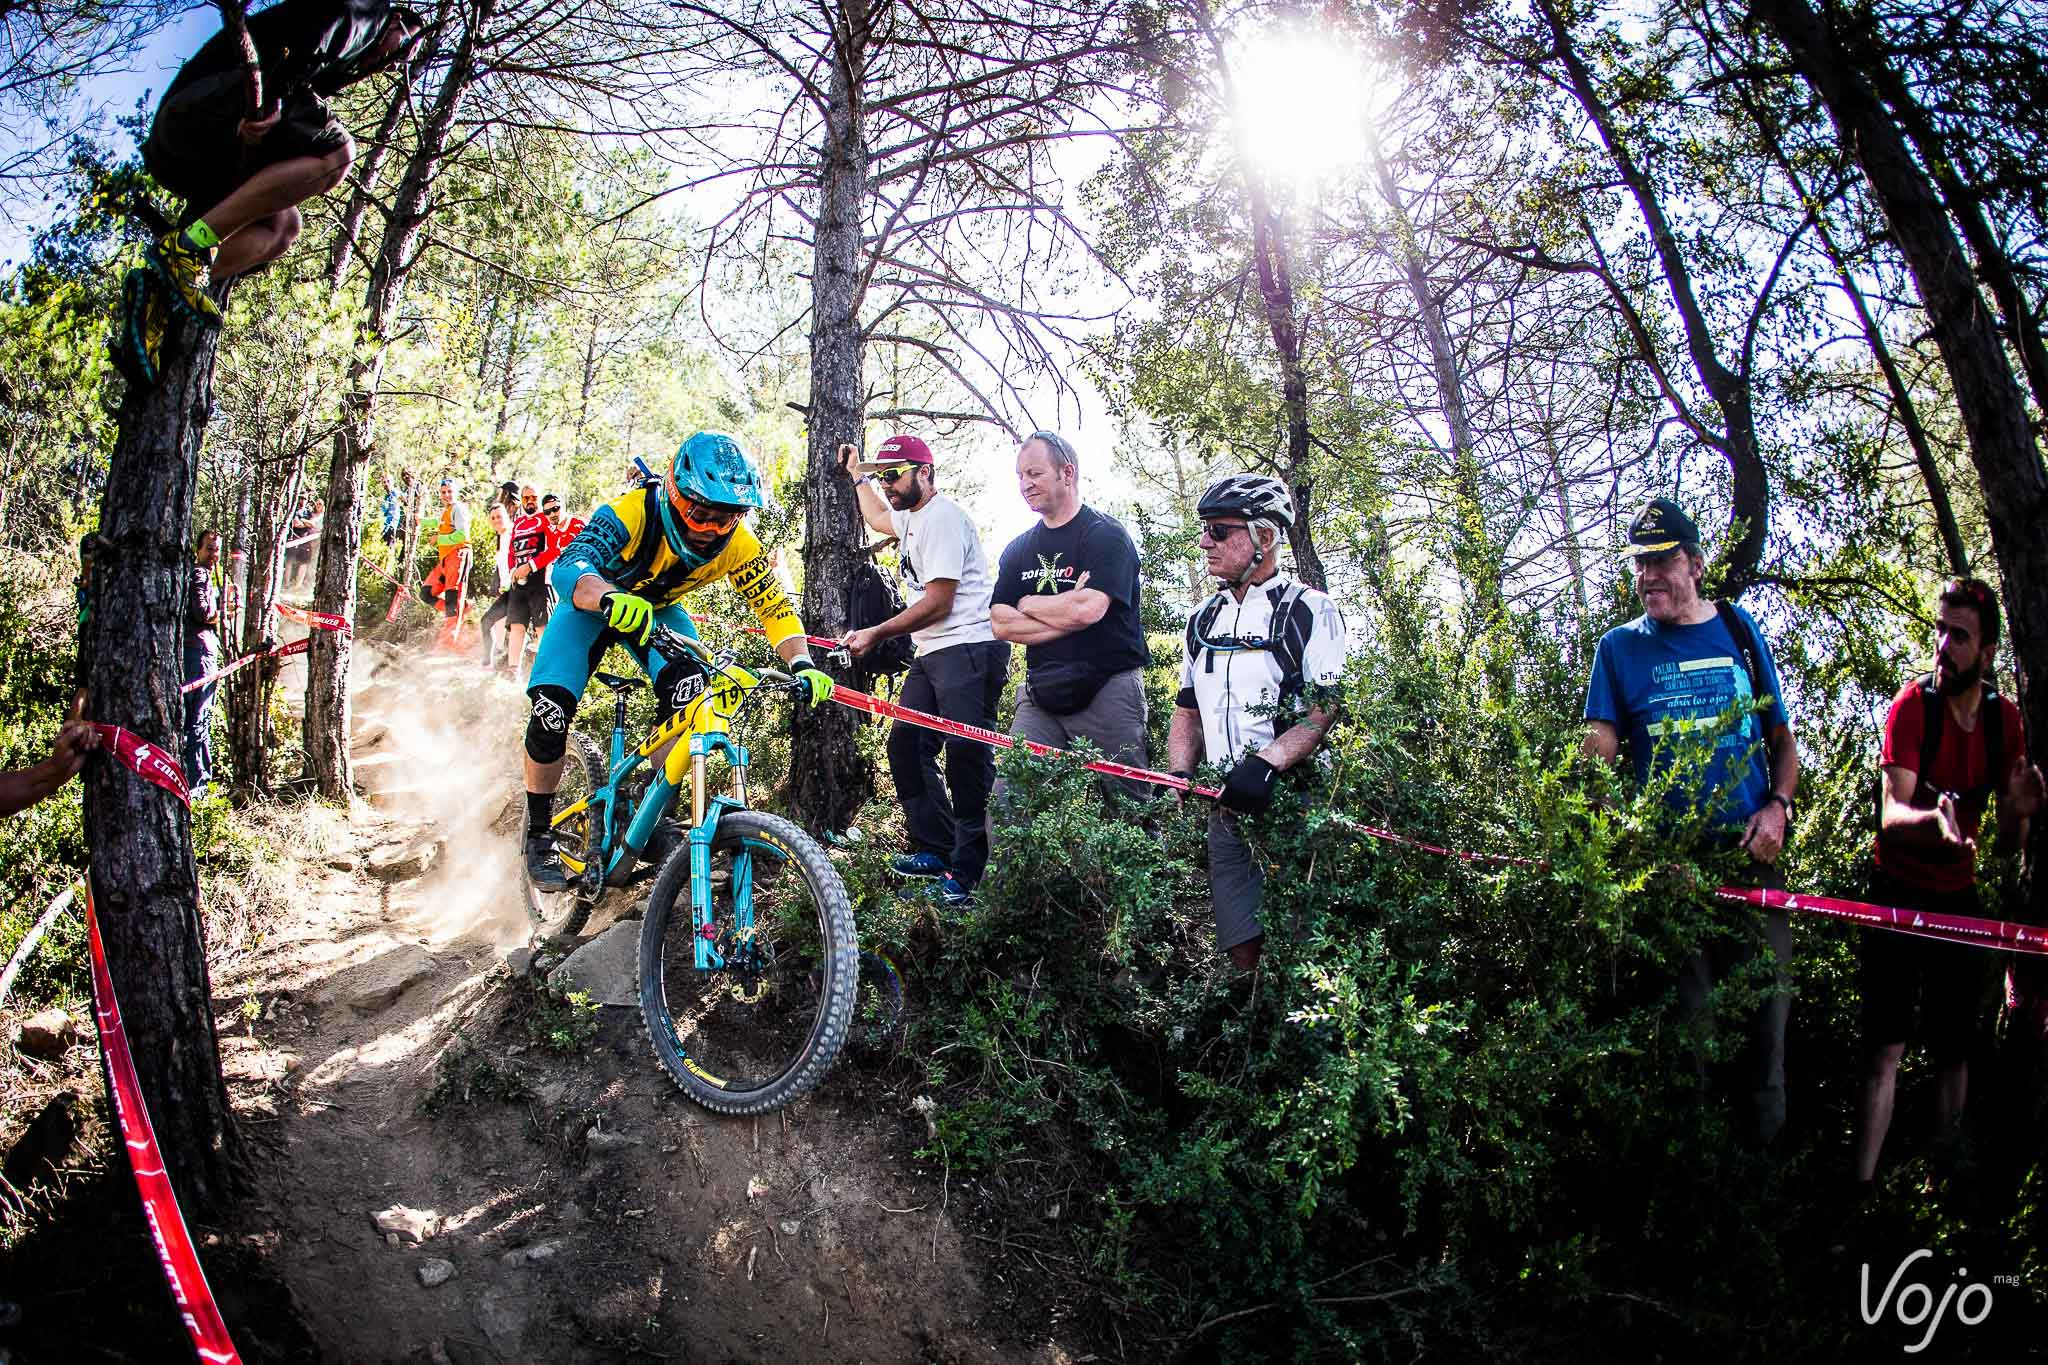 Enduro_World_Series_7_Spain_Ainsa_Zona_Zero_2015_Copyright_VojoMag-1-2